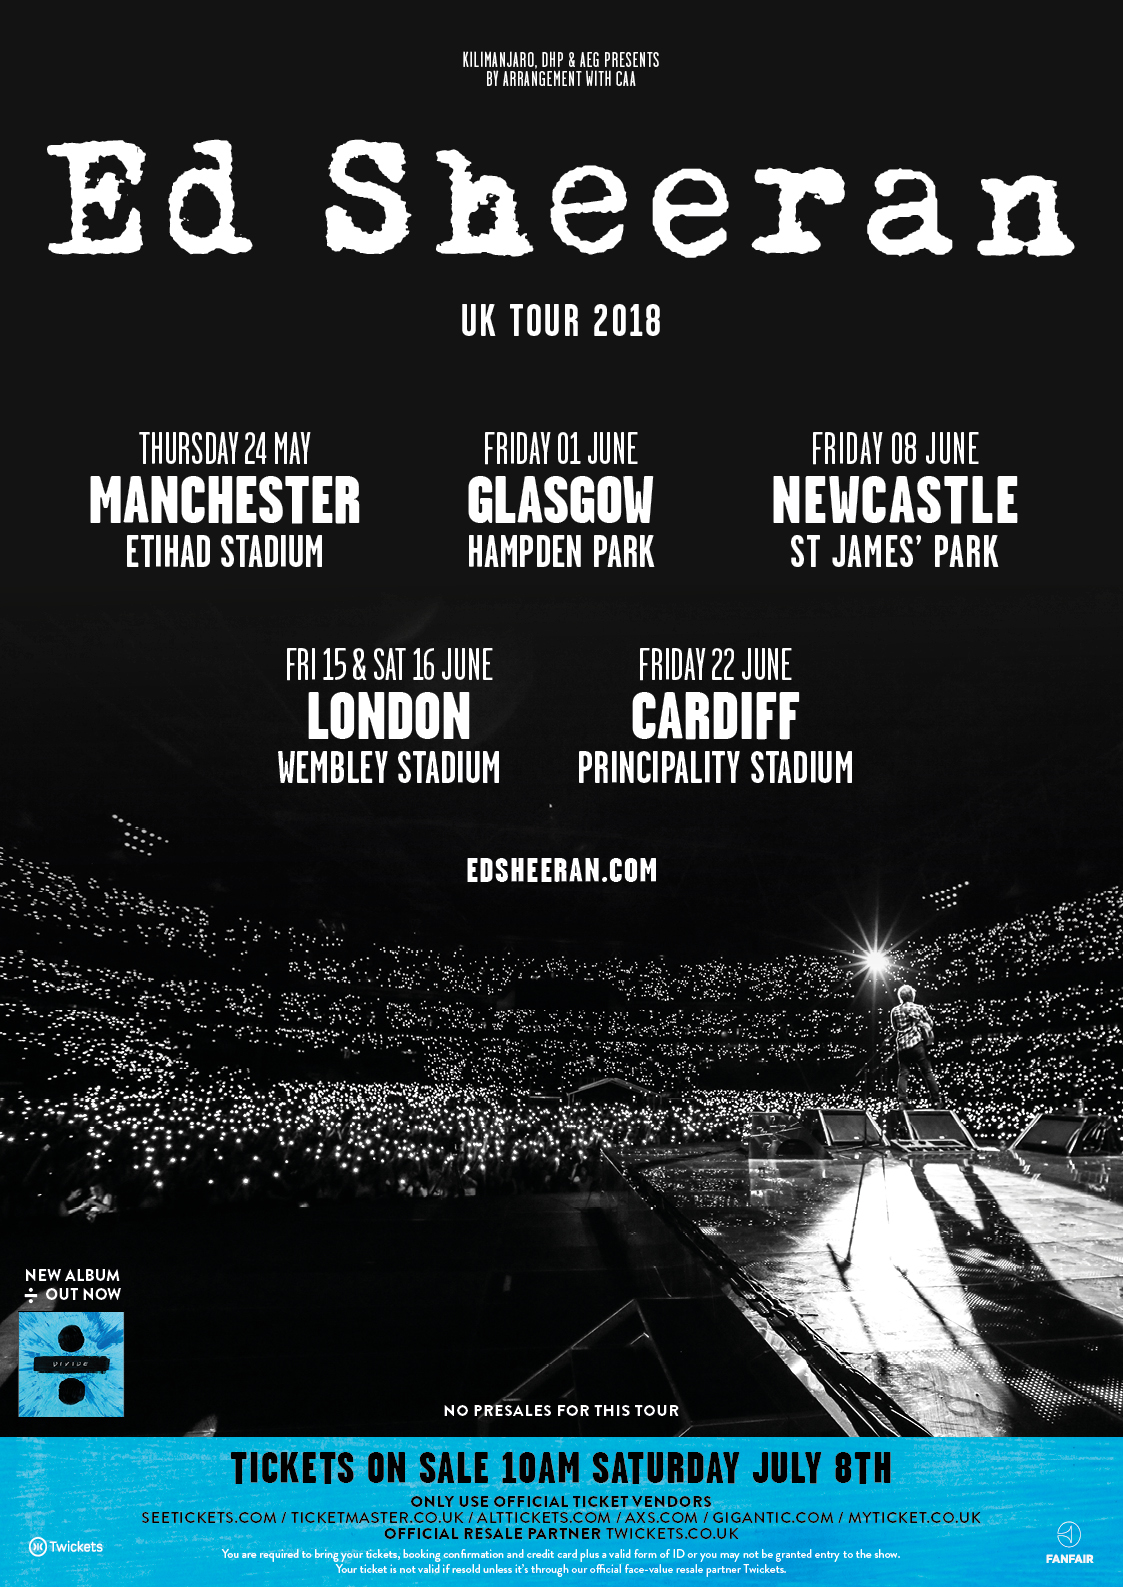 Ed Sheeran UK Stadium Tour